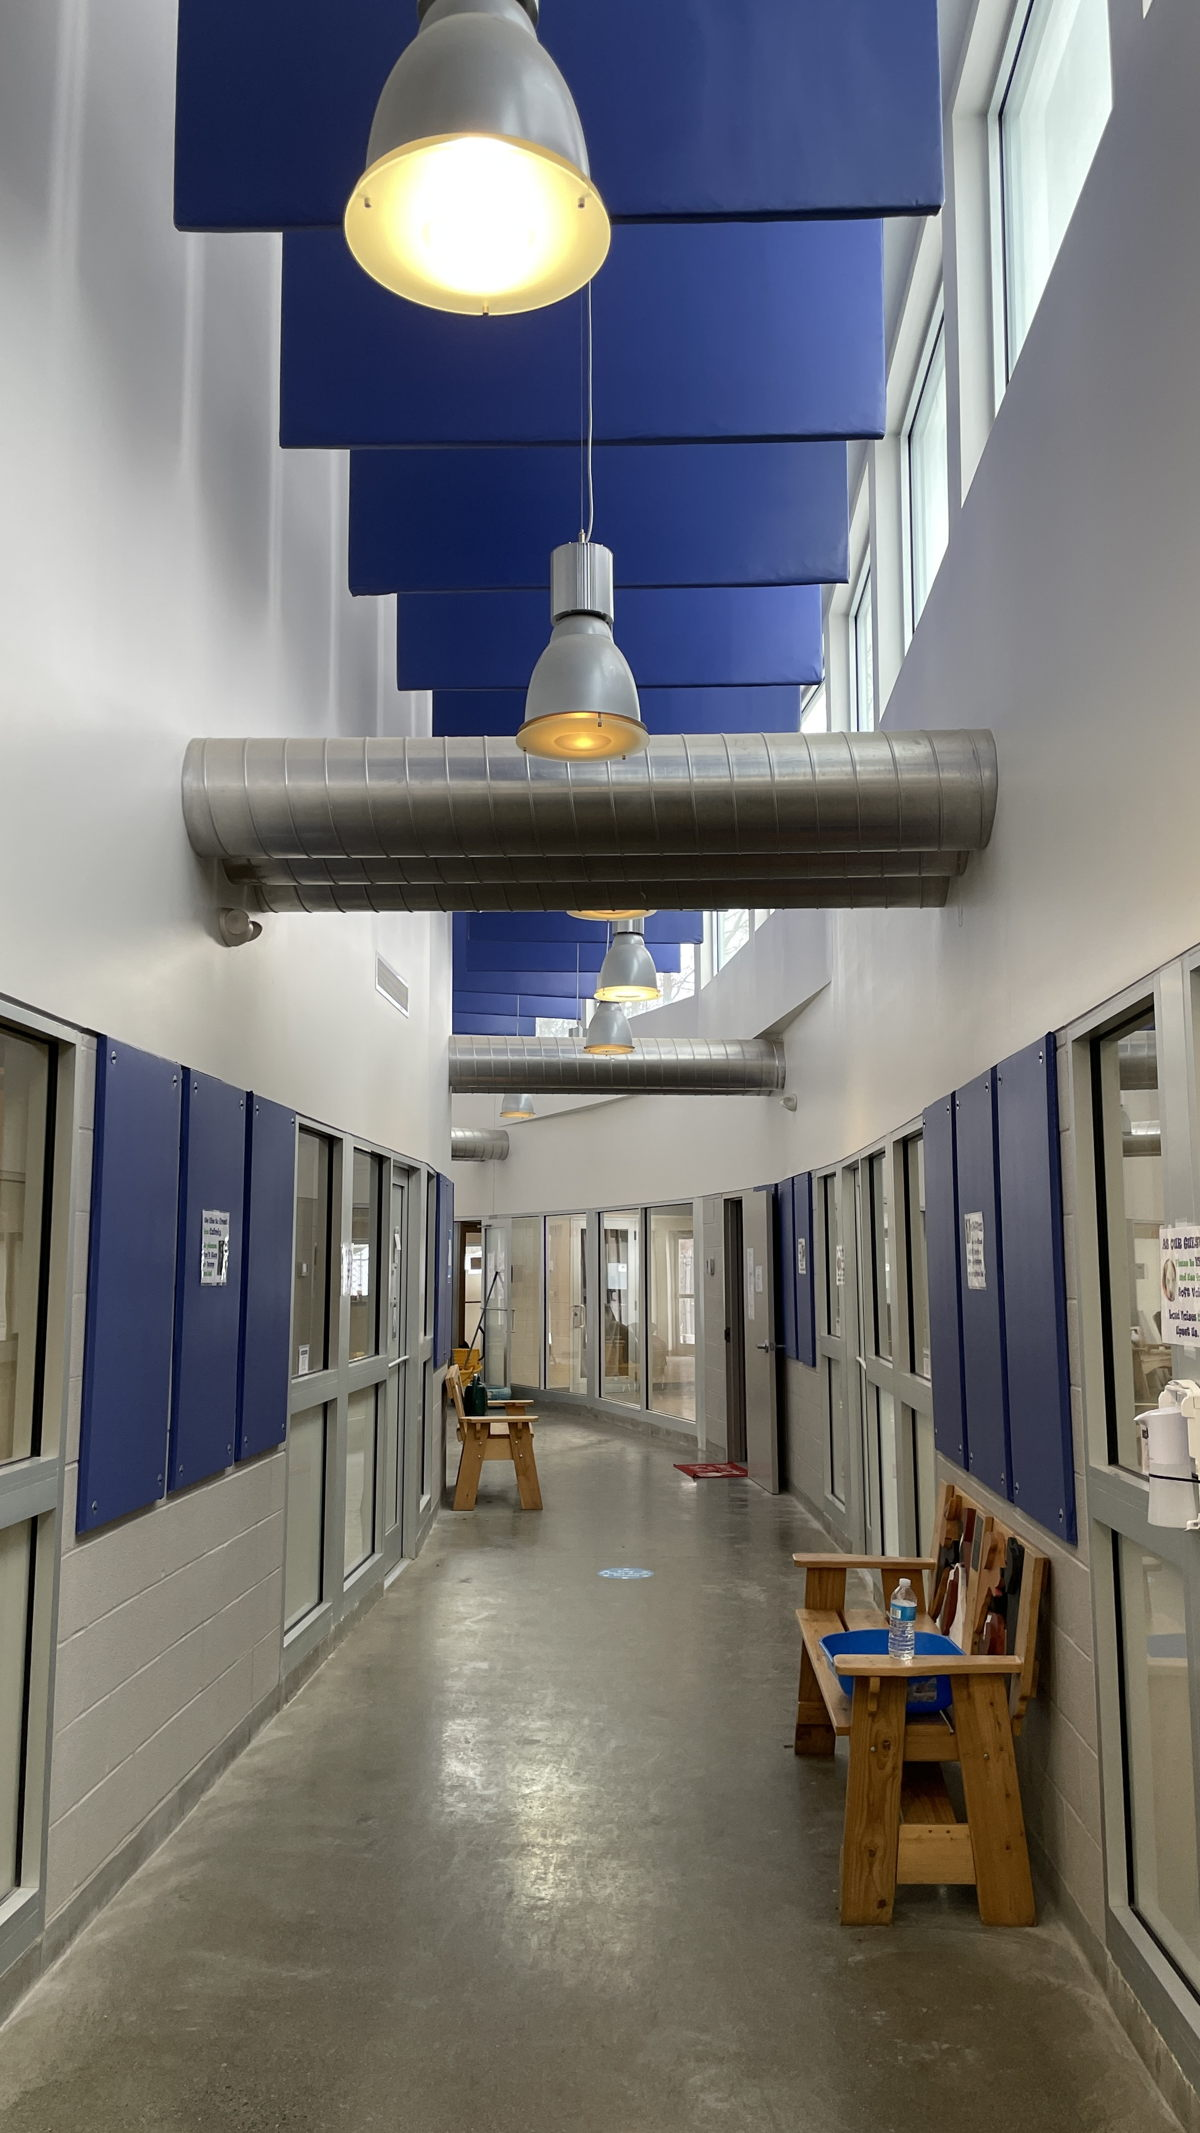 The WSDG team designed an elegant solution that utilized vinyl coated wall-treatments and hanging ceiling baffles to eliminate the unwanted echoes